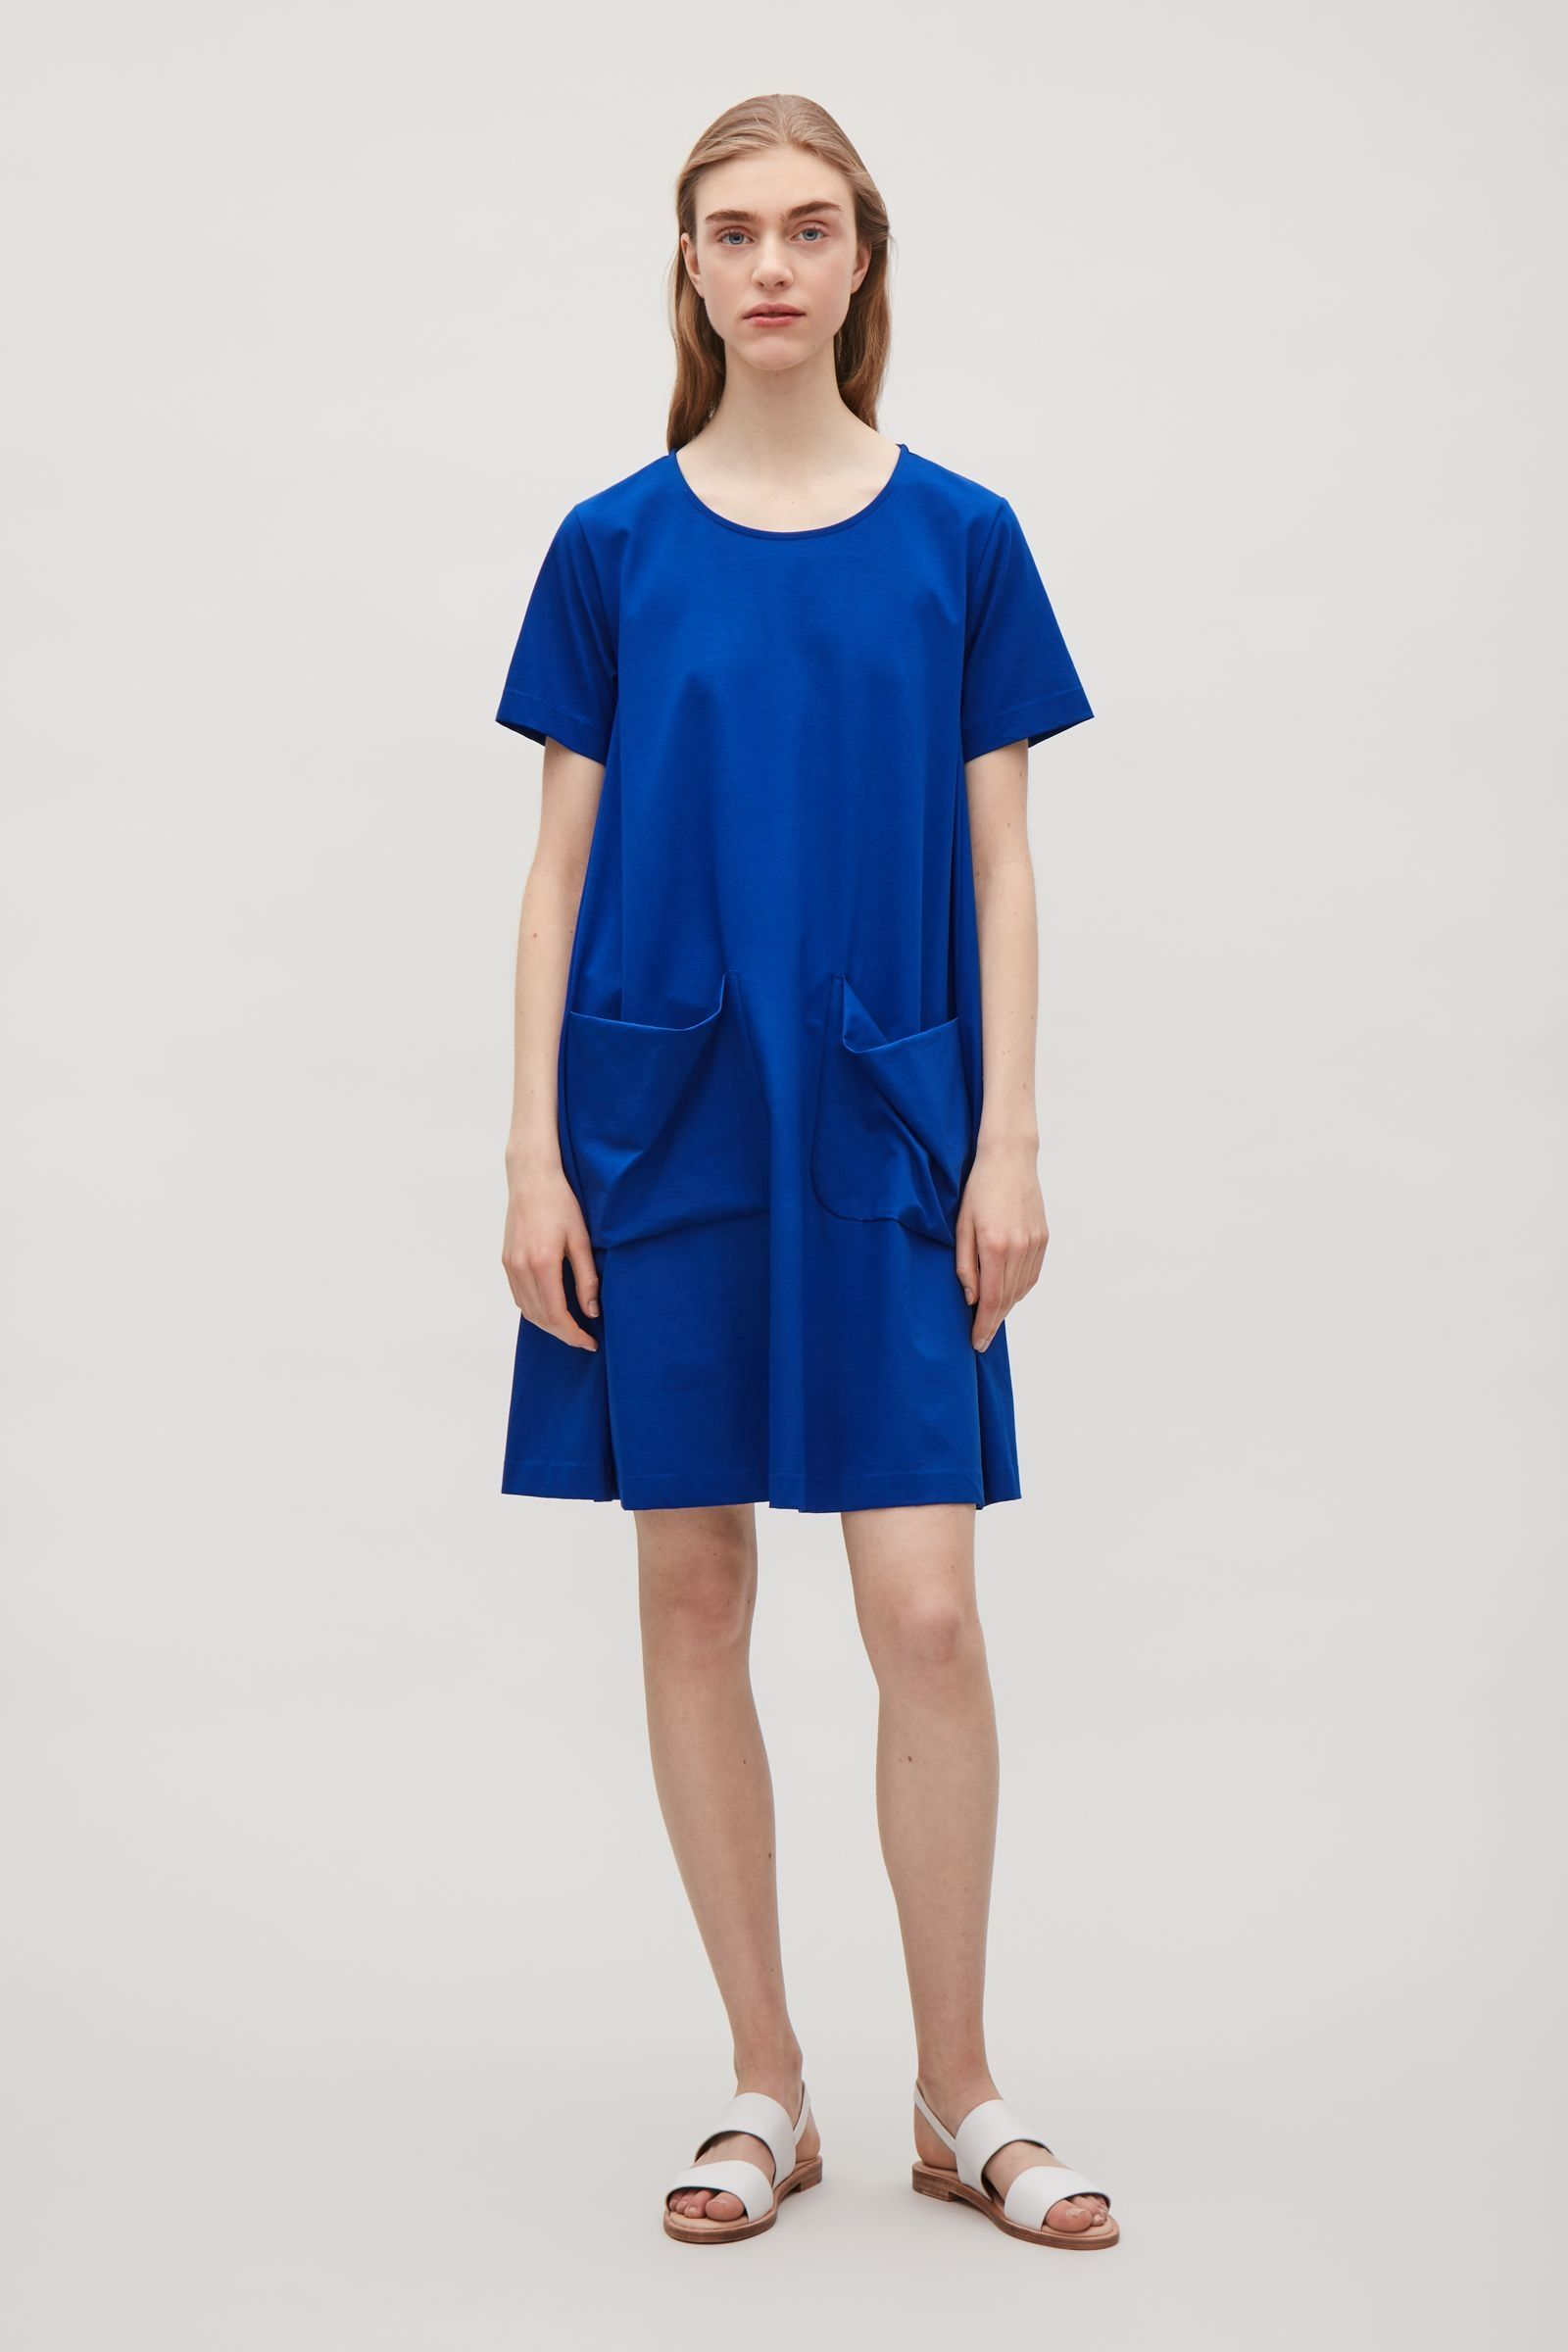 COS image 1 of A-line jersey dress in Cobalt Blue | ISOLDE | Pinterest